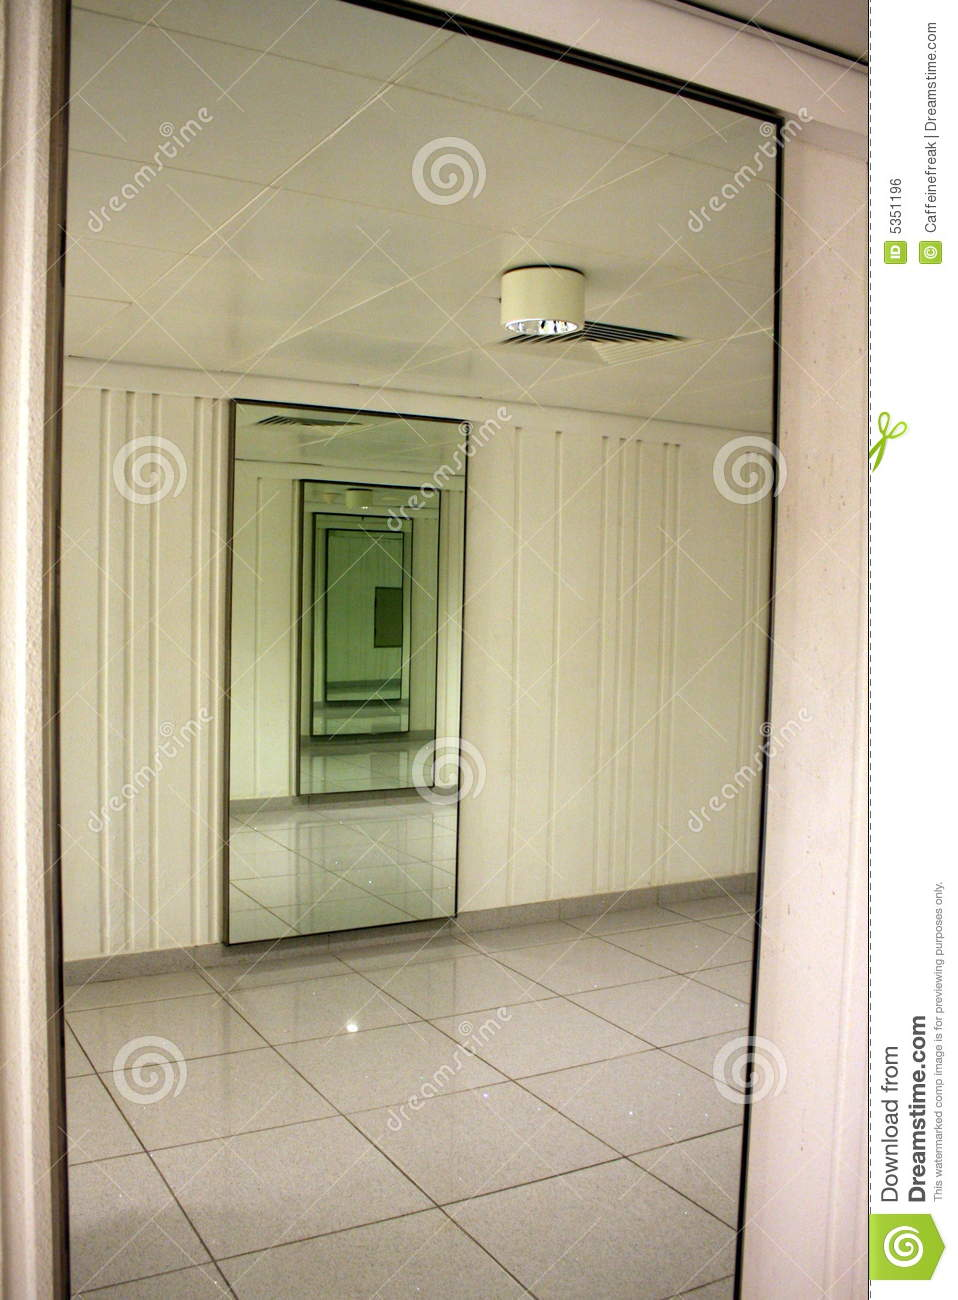 Infinite Hallway Mirrors Royalty Free Stock Image  Image